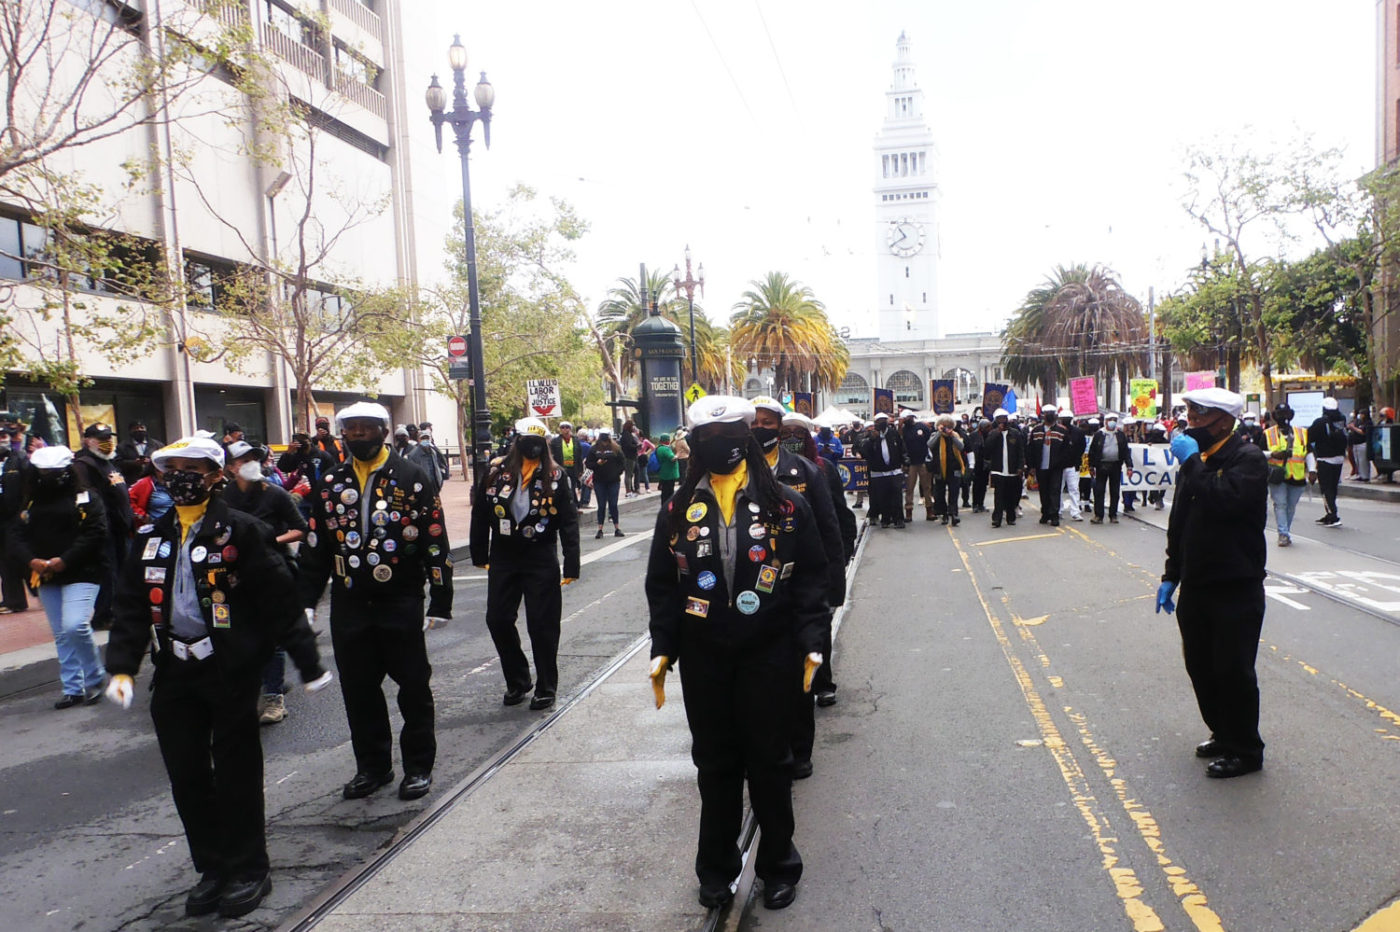 May-First-International-Workers-Day-San-Francisco-ILWU-Drill-Team-050121-by-Jahahara-1400x932, Reparations are here!, Culture Currents